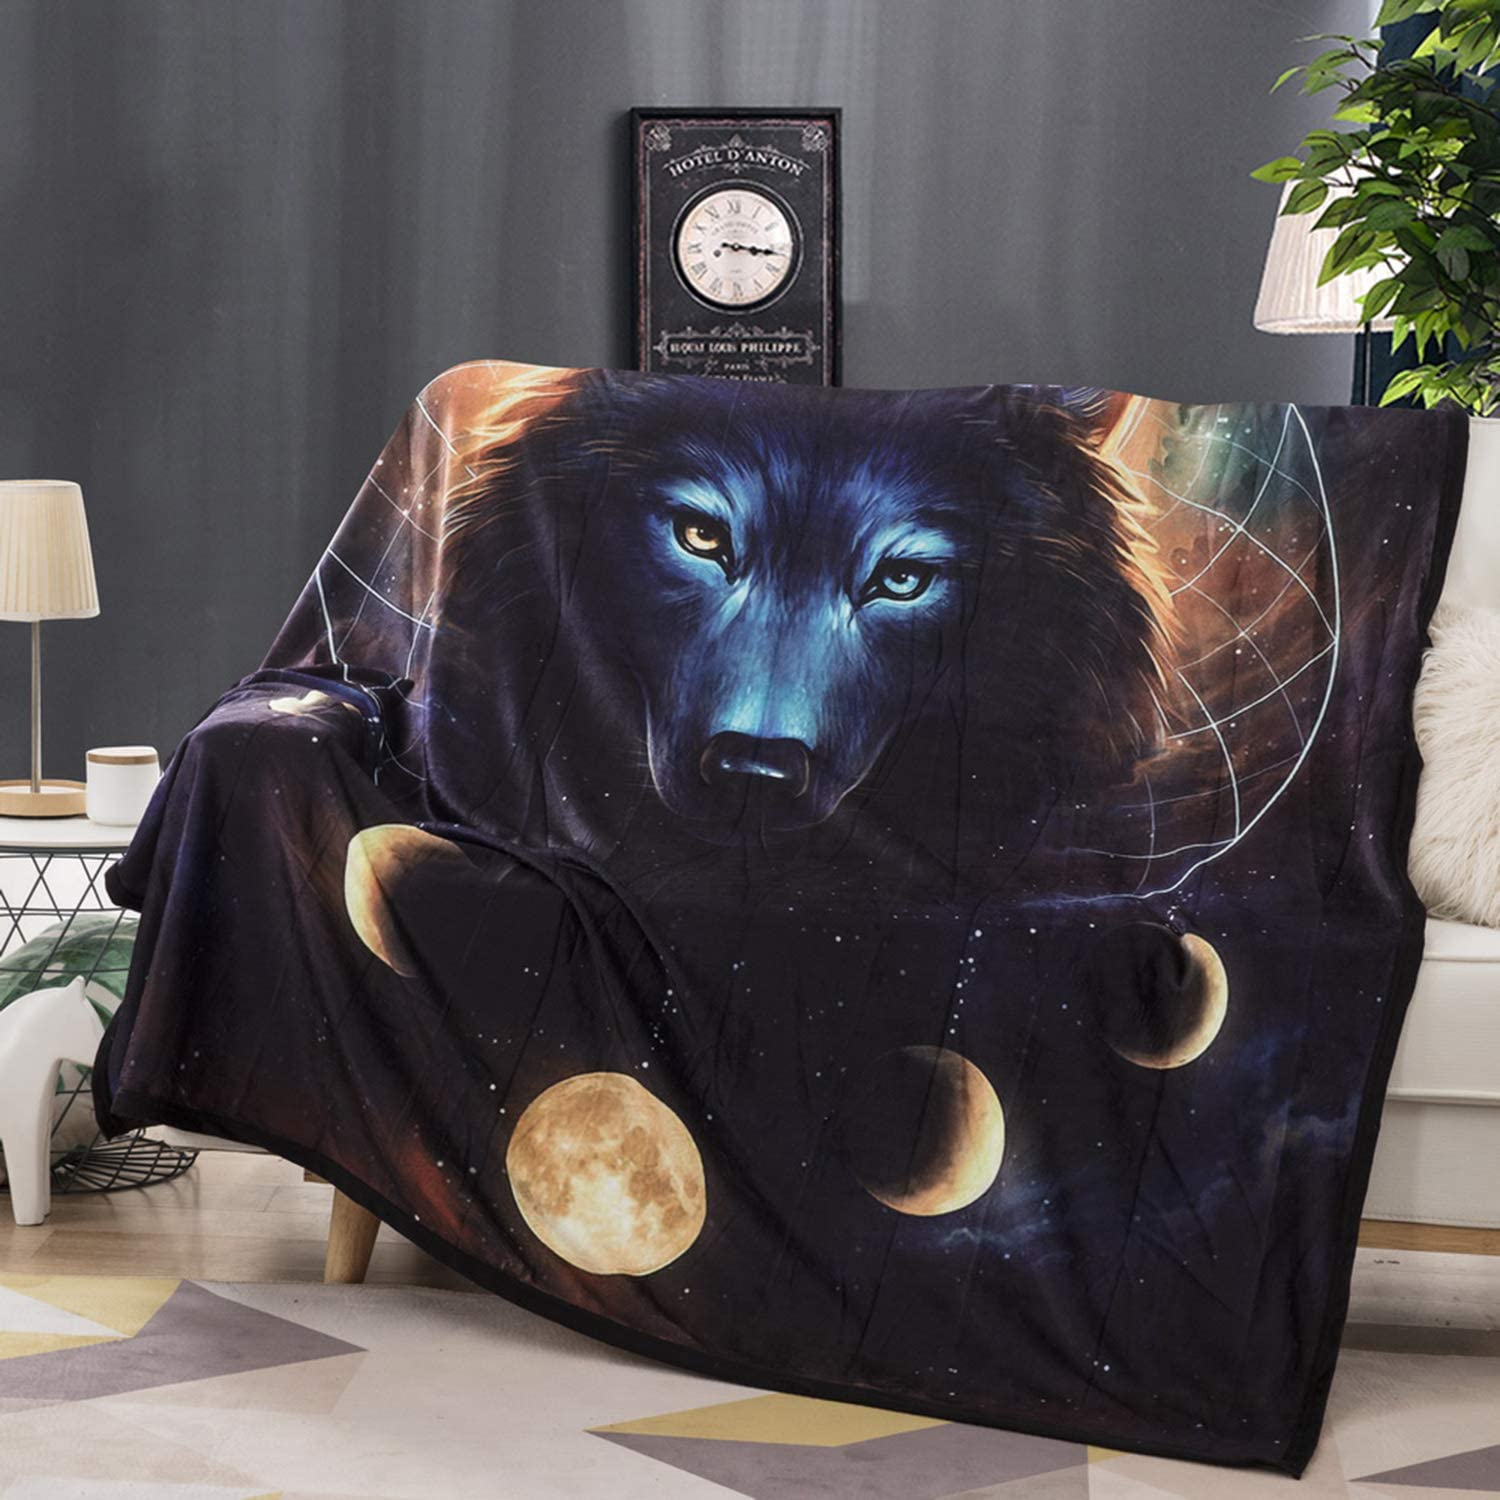 Felu Flannel Fleece Blanket Luxury 3D Black Wolf Dream Catcher Printed Soft Cozy Lightweight Durable Plush Throw Blanket for Bedroom Living Rooms Sofa Couch